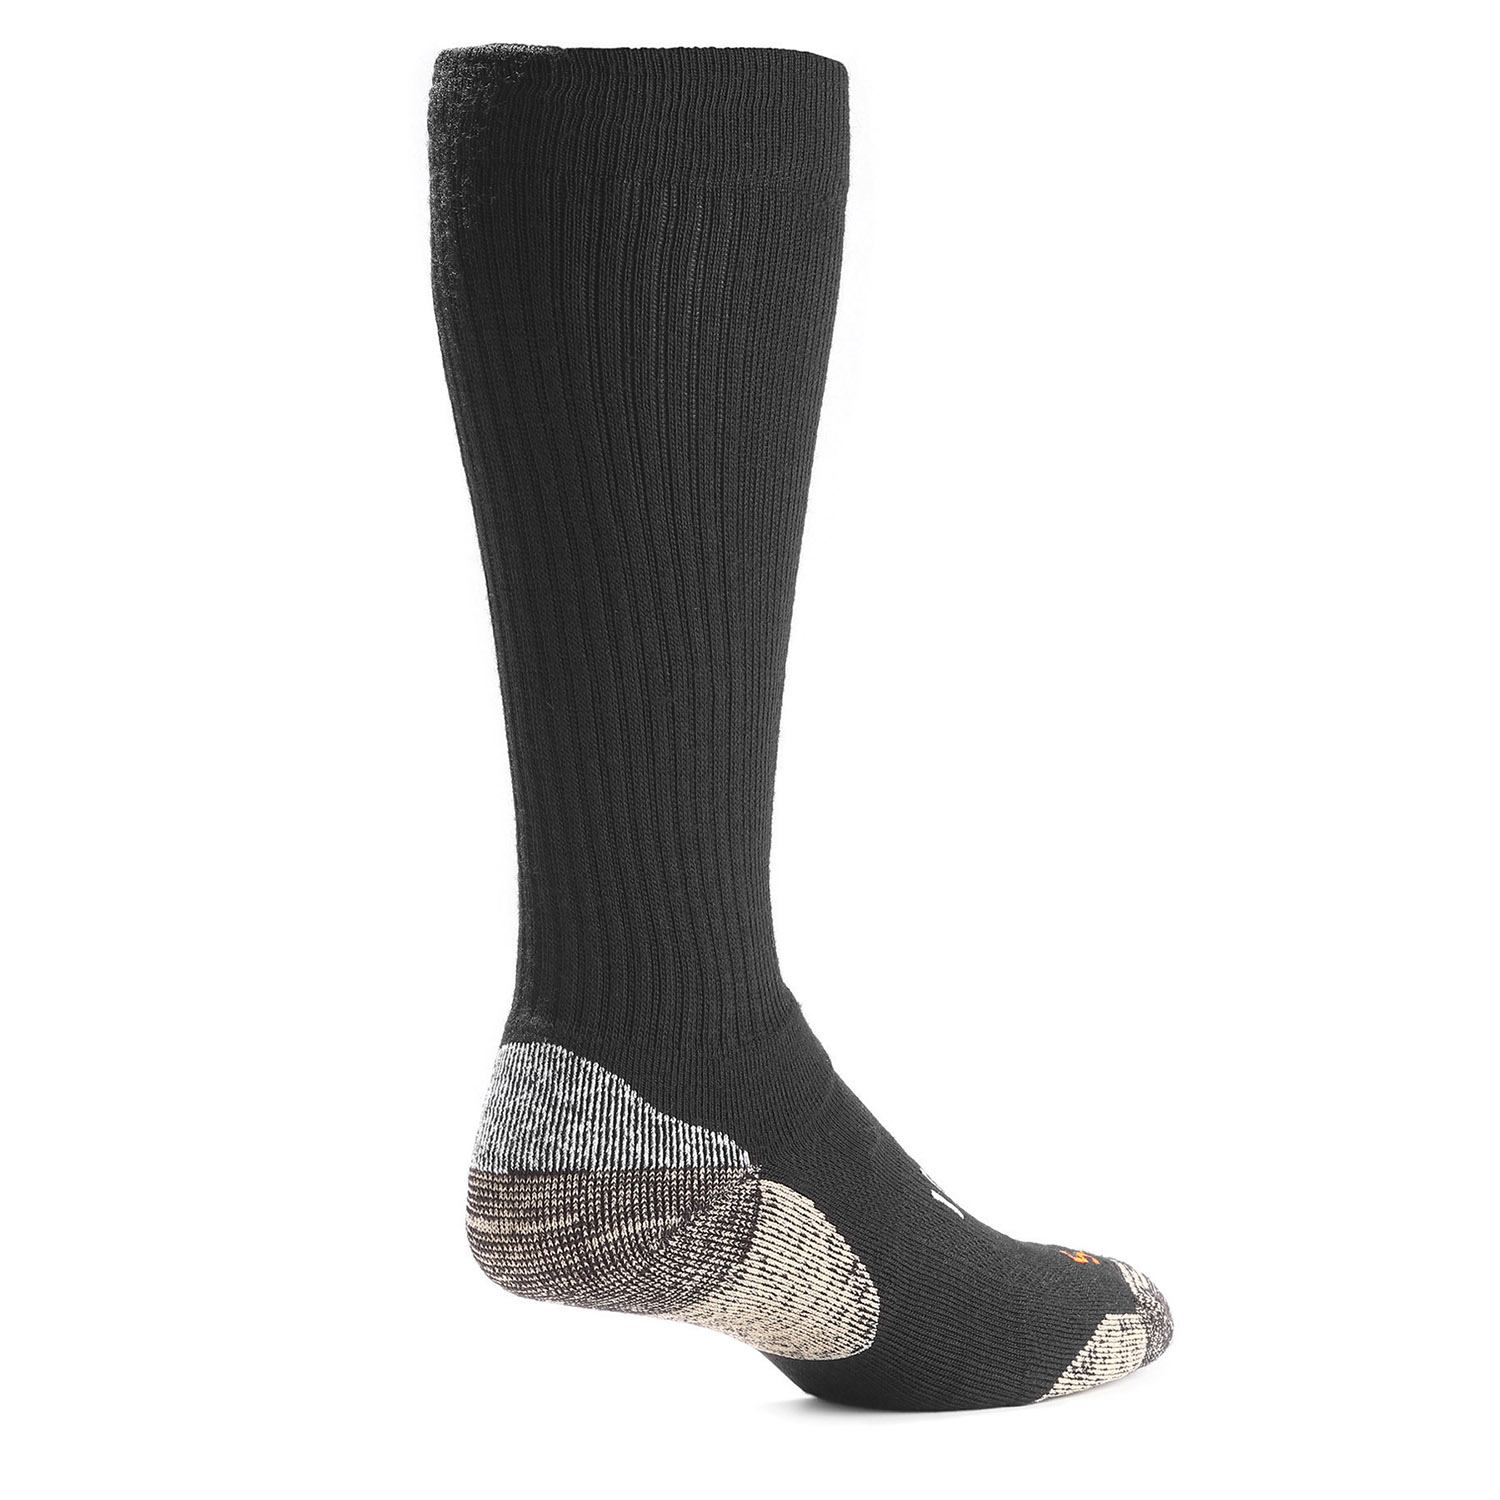 5.11 Tactical Merino Over-the-Calf Boot Socks